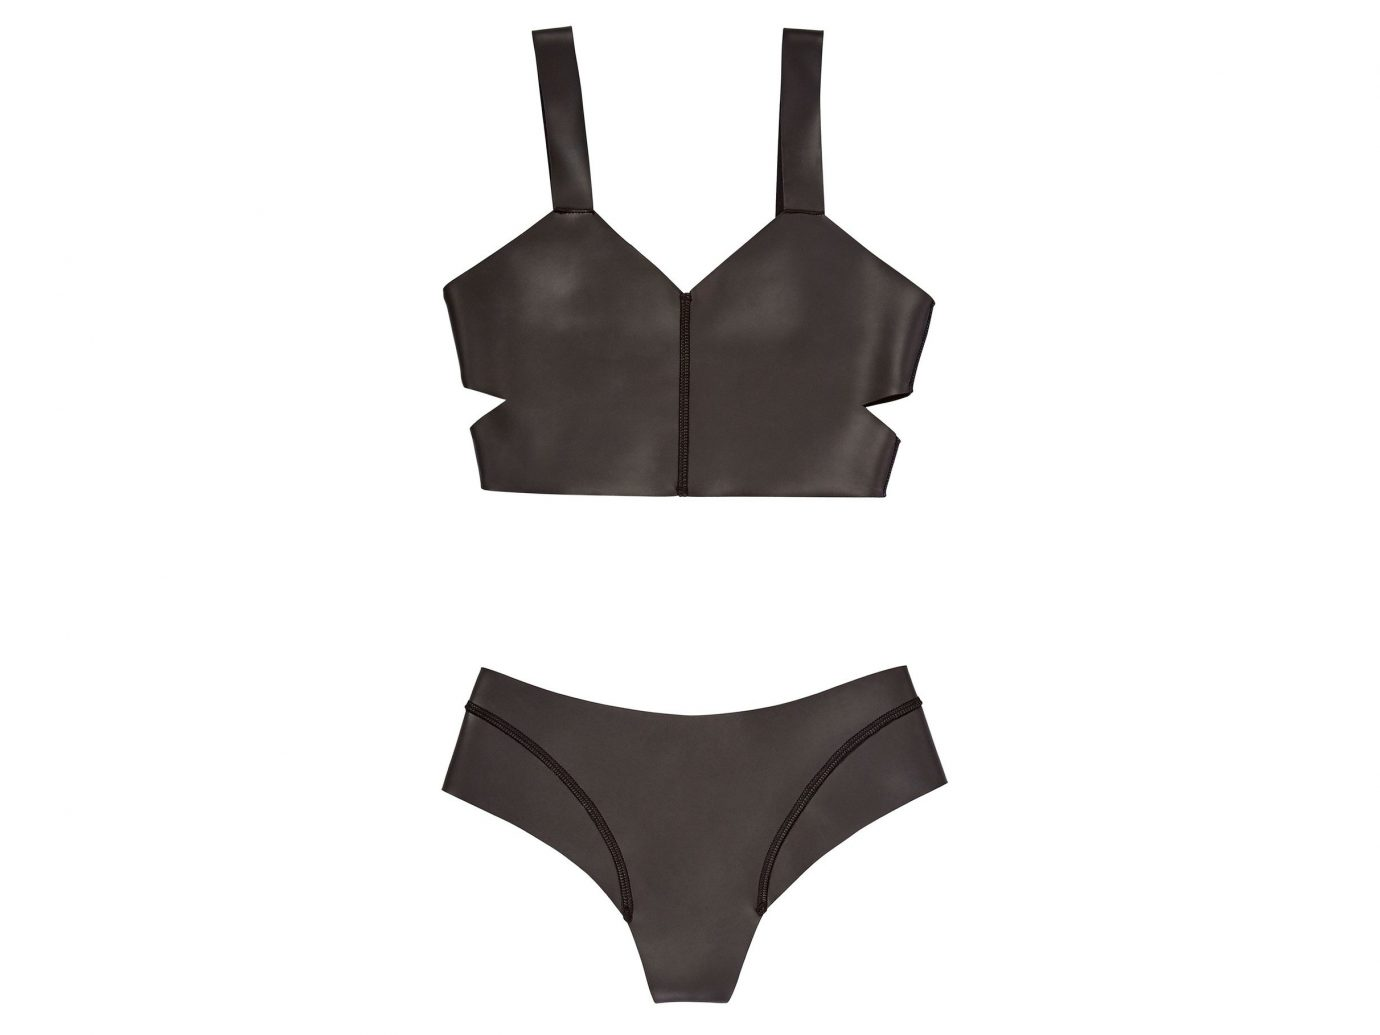 Style + Design clothing undergarment product active undergarment arm ax brassiere